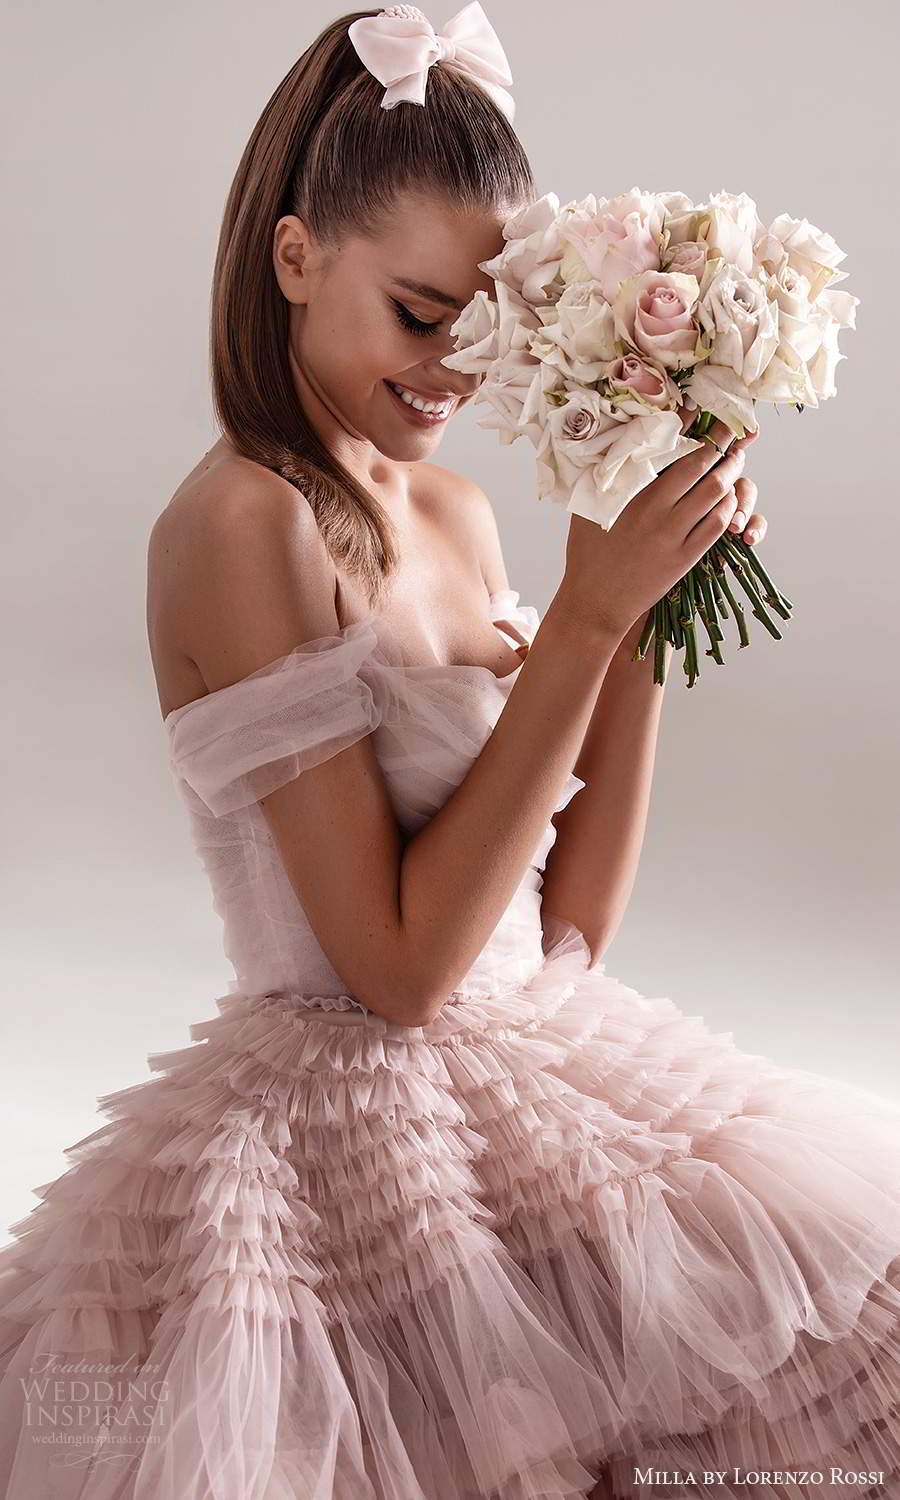 milla by lorenzo rossi 2020 rtw off shoulder straps semi sweetheart neckline ruched bodice a line ball gown wedding dress ruffle skirt chapel train blush pink (6) zv